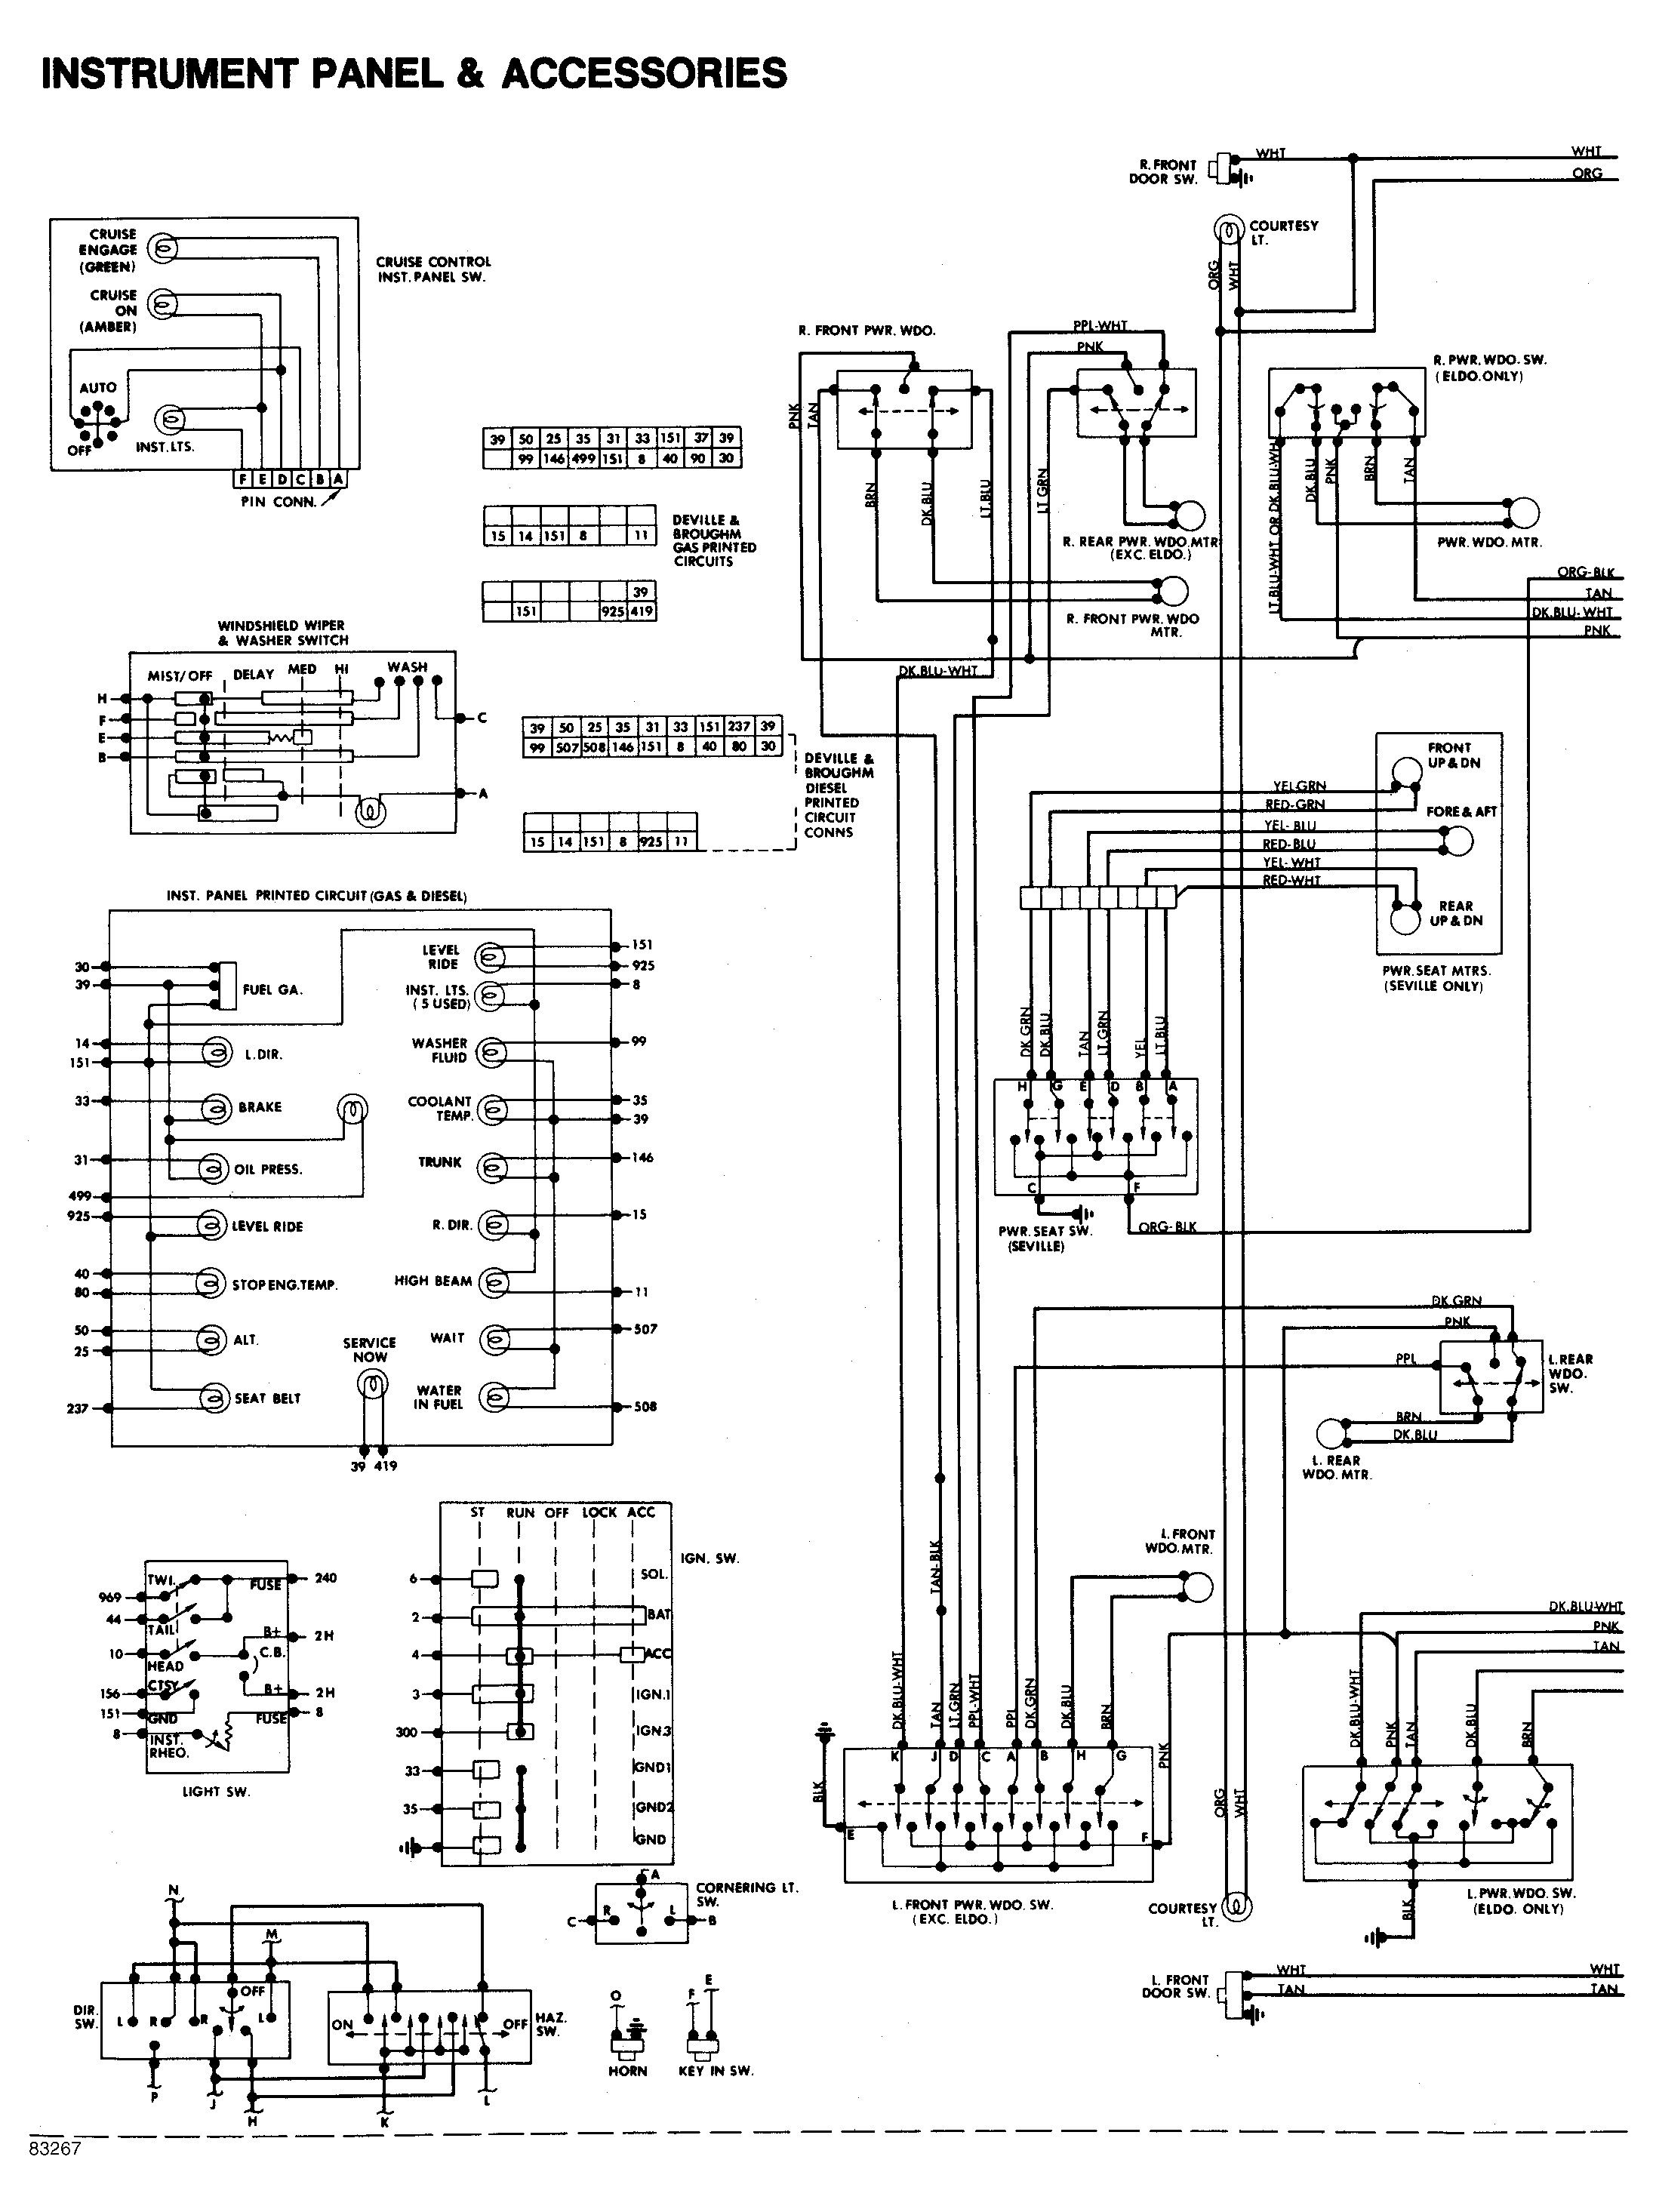 hight resolution of daewoo wiring diagram radio wiring diagram week 2000 honda accord radio wiring diagram fresh daewoo leganza